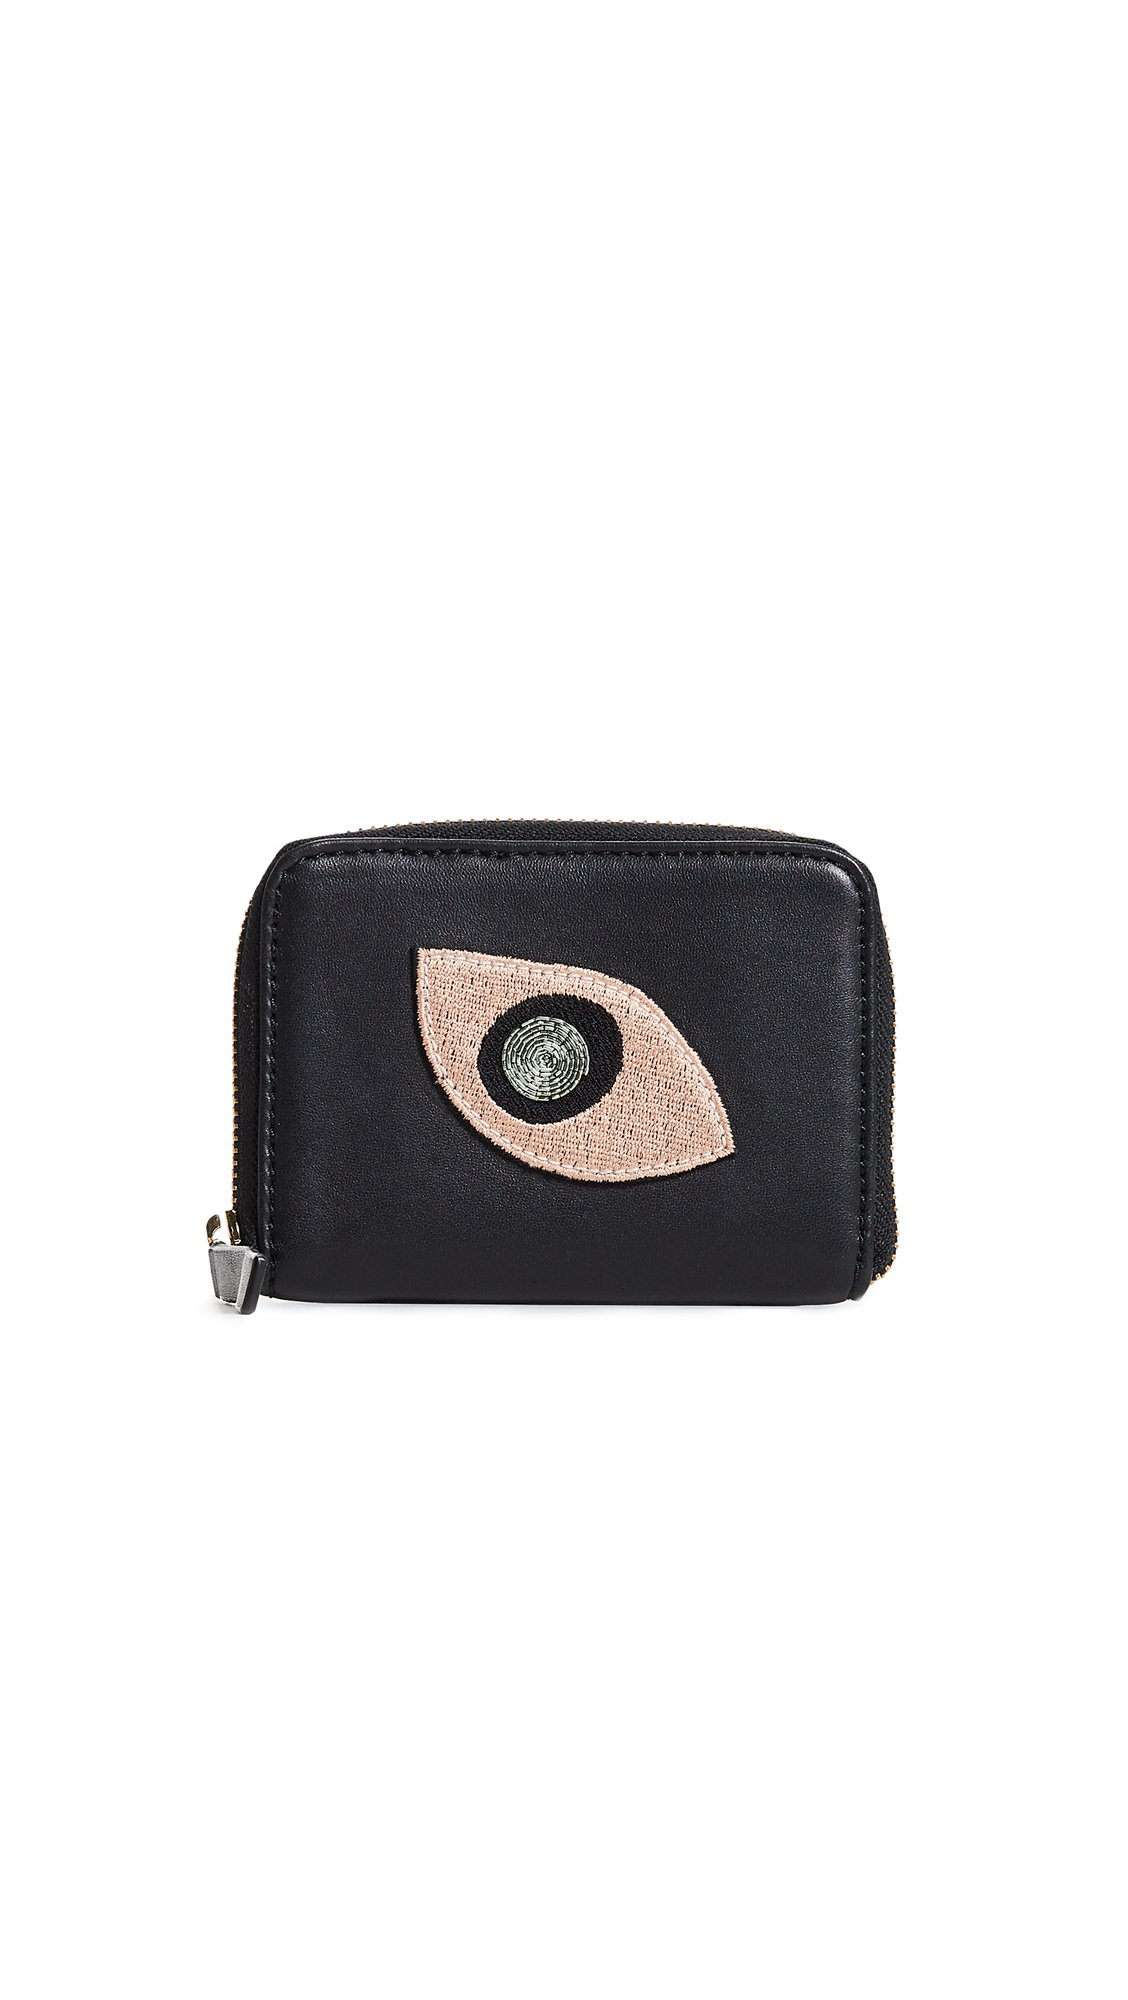 Lizzie Fortunato Women's Abstract Eye Zip Coin Purse, Black, One Size by Lizzie Fortunato